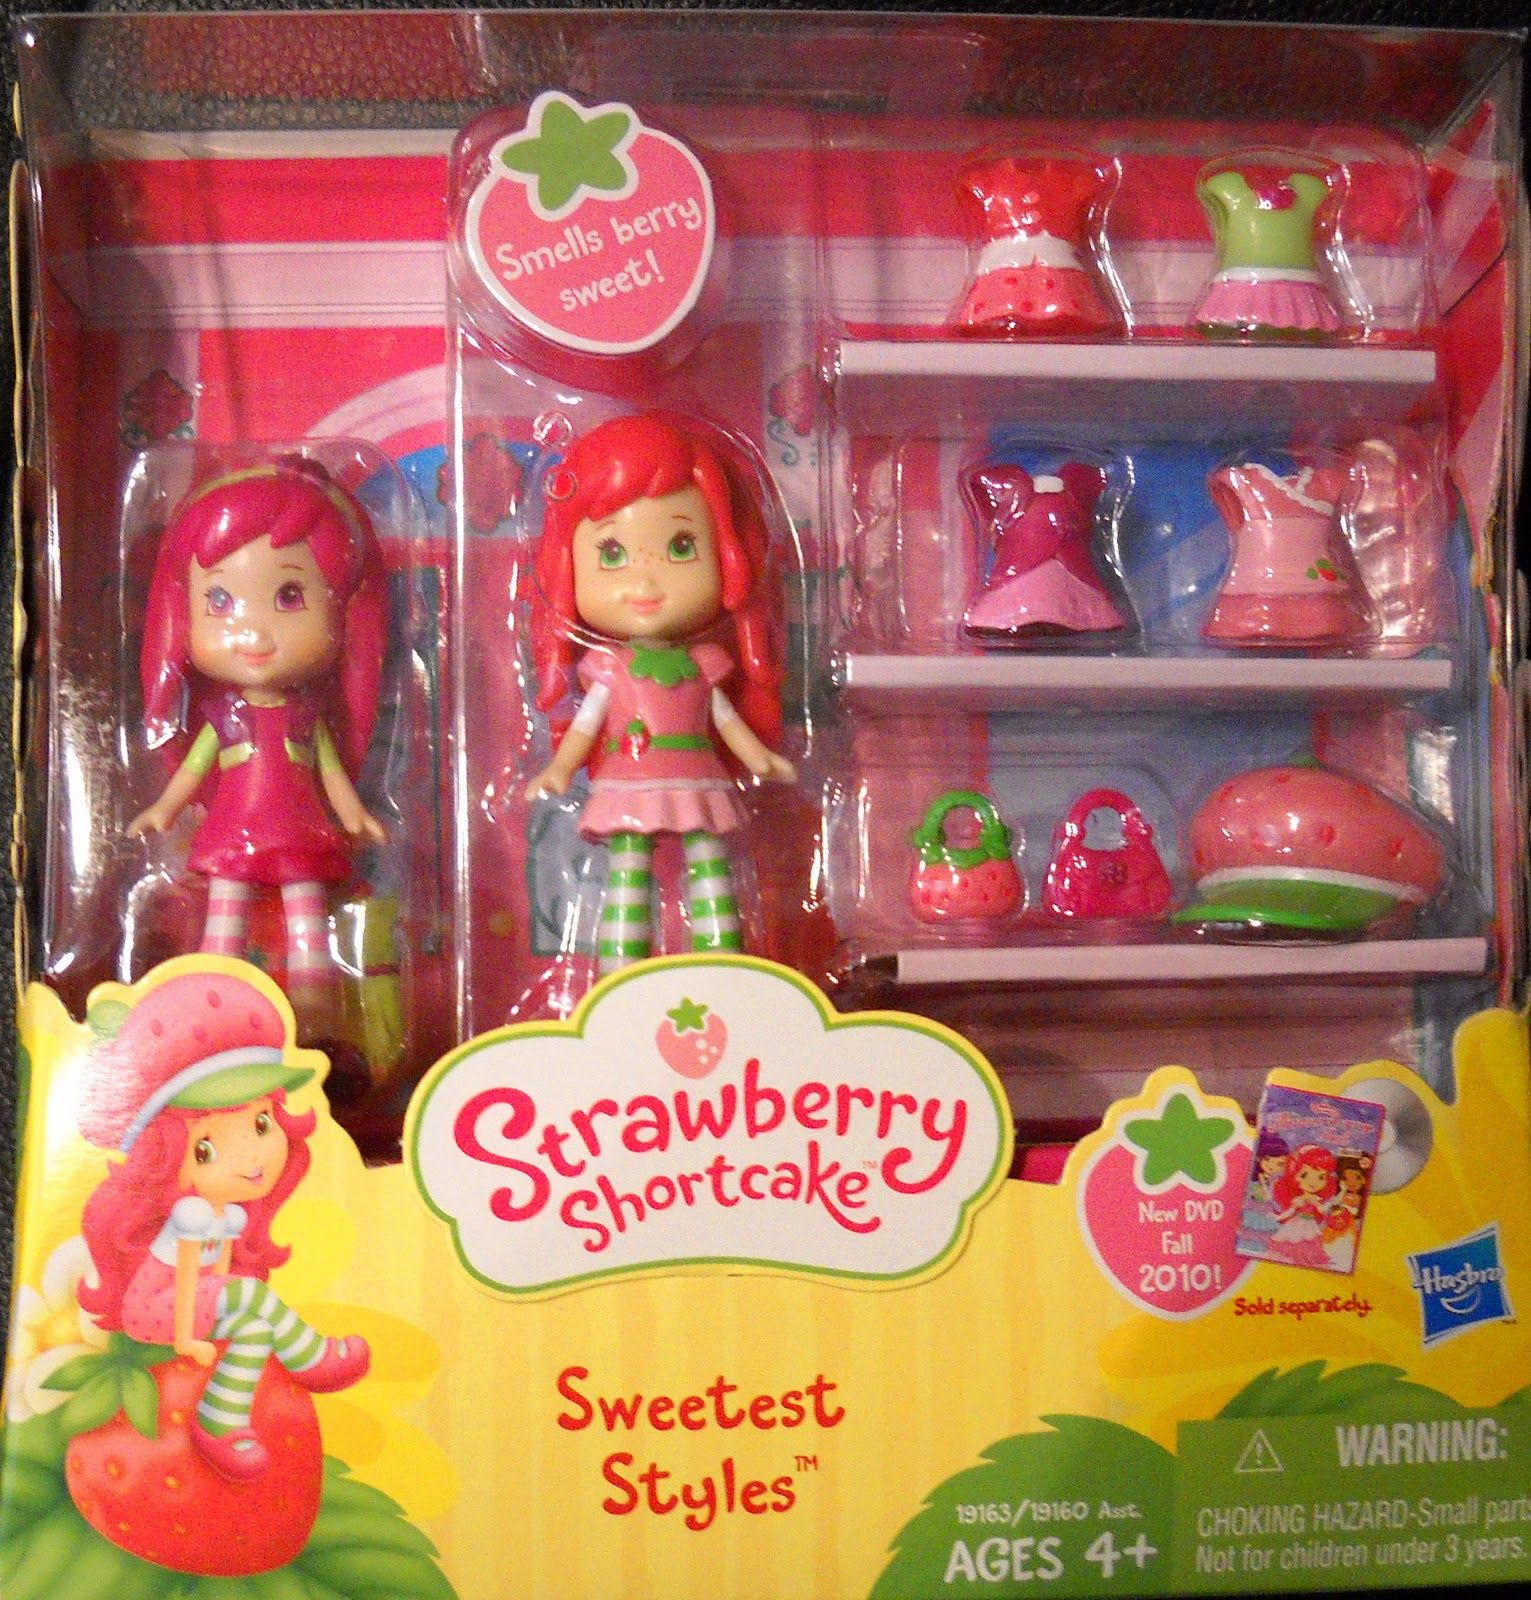 Both Kmart and Toys R Us have Strawberry Shortcake Sweet Styles